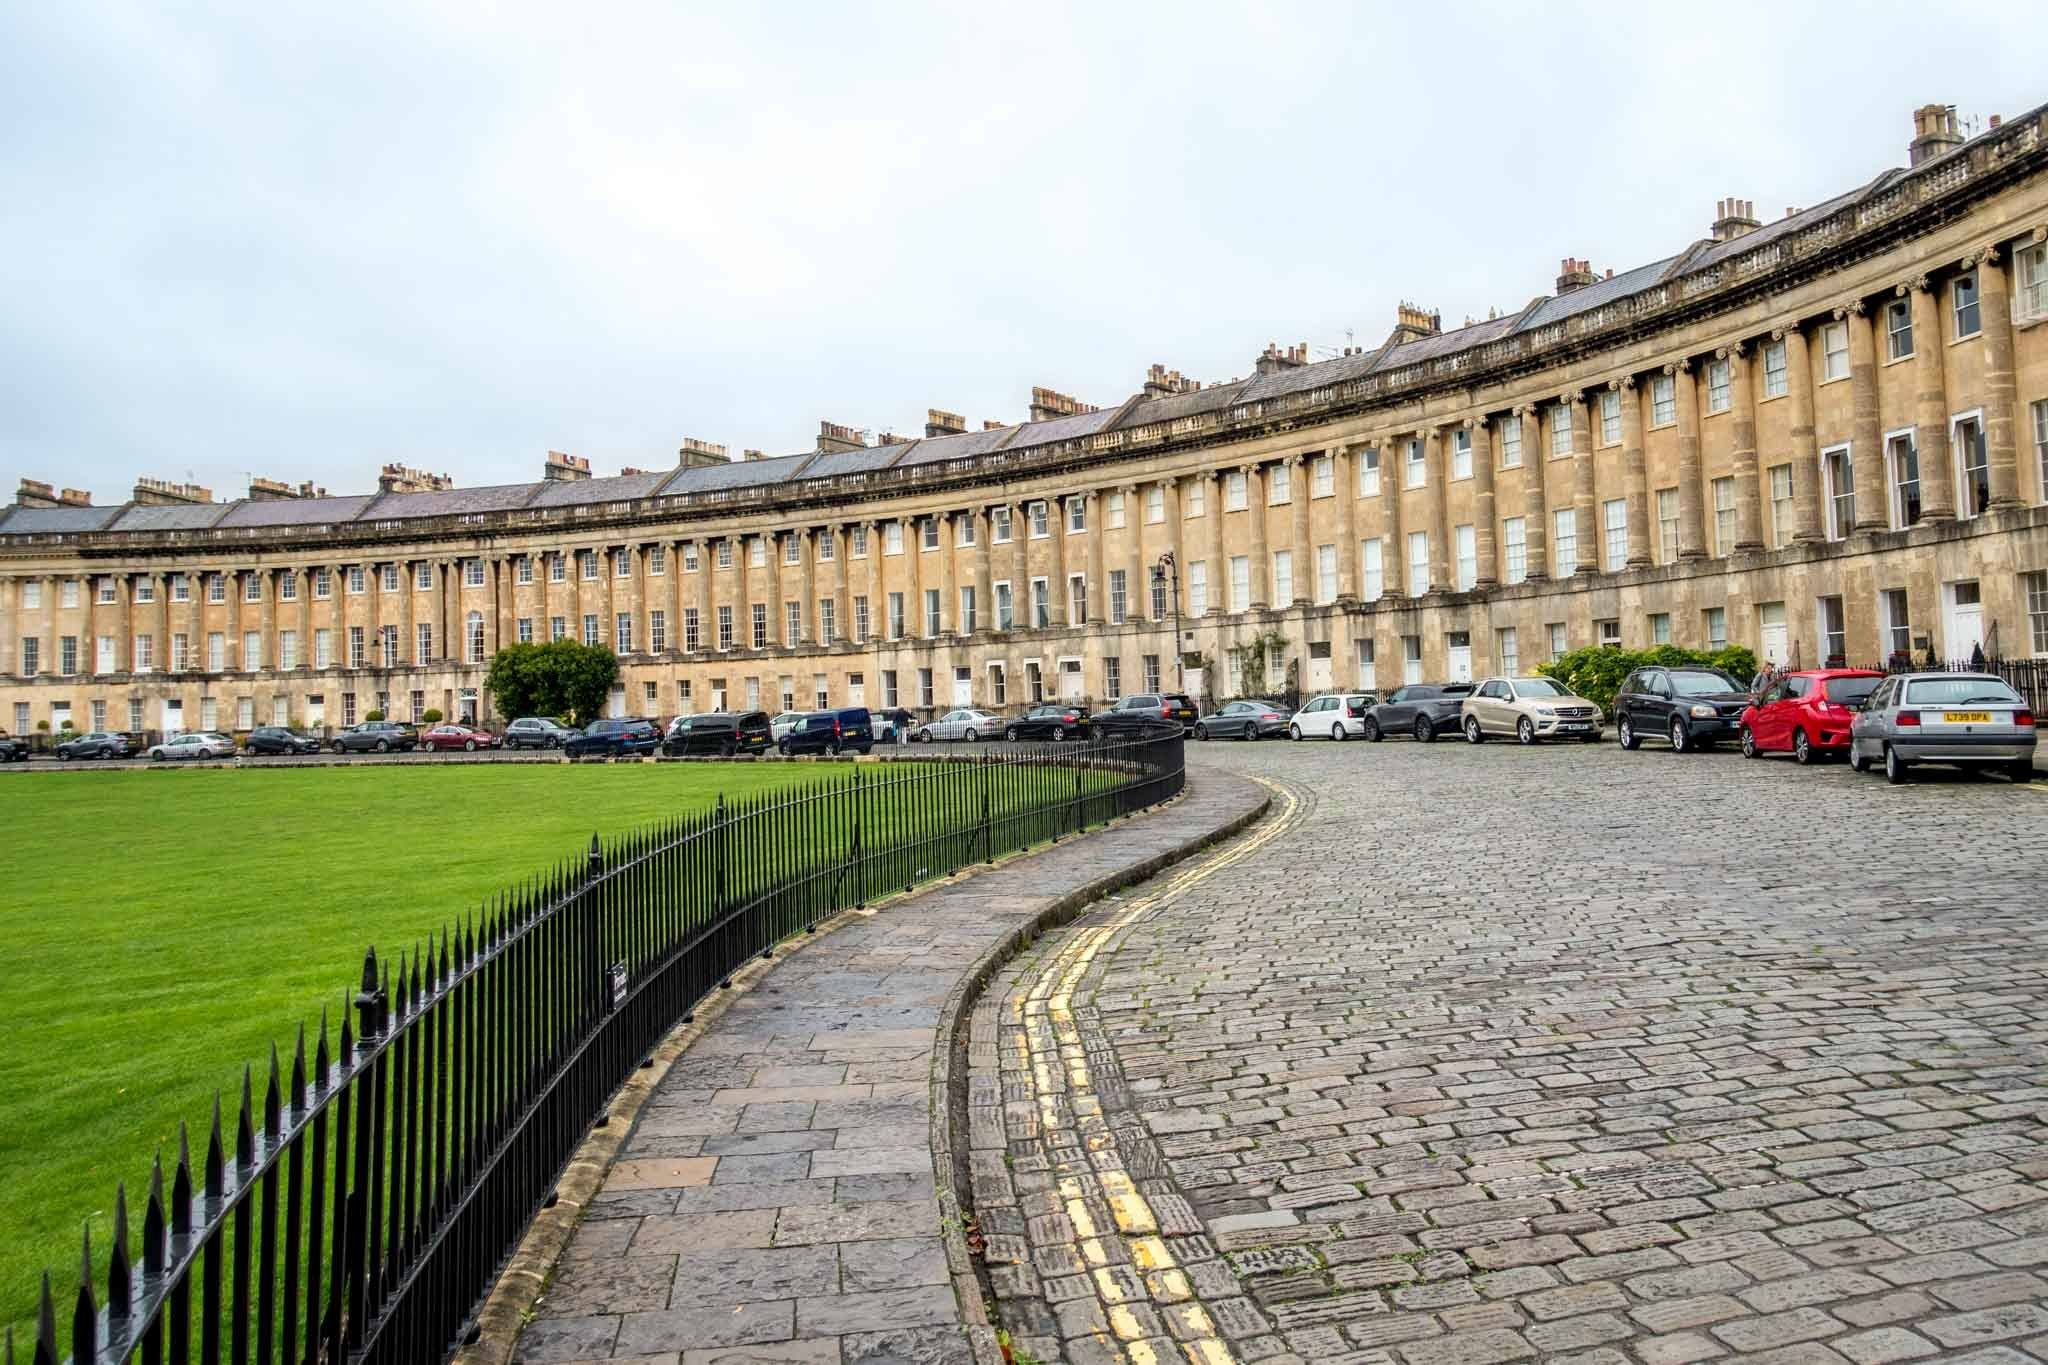 Curved row of Georgian houses with cars parked, the Royal Crescent